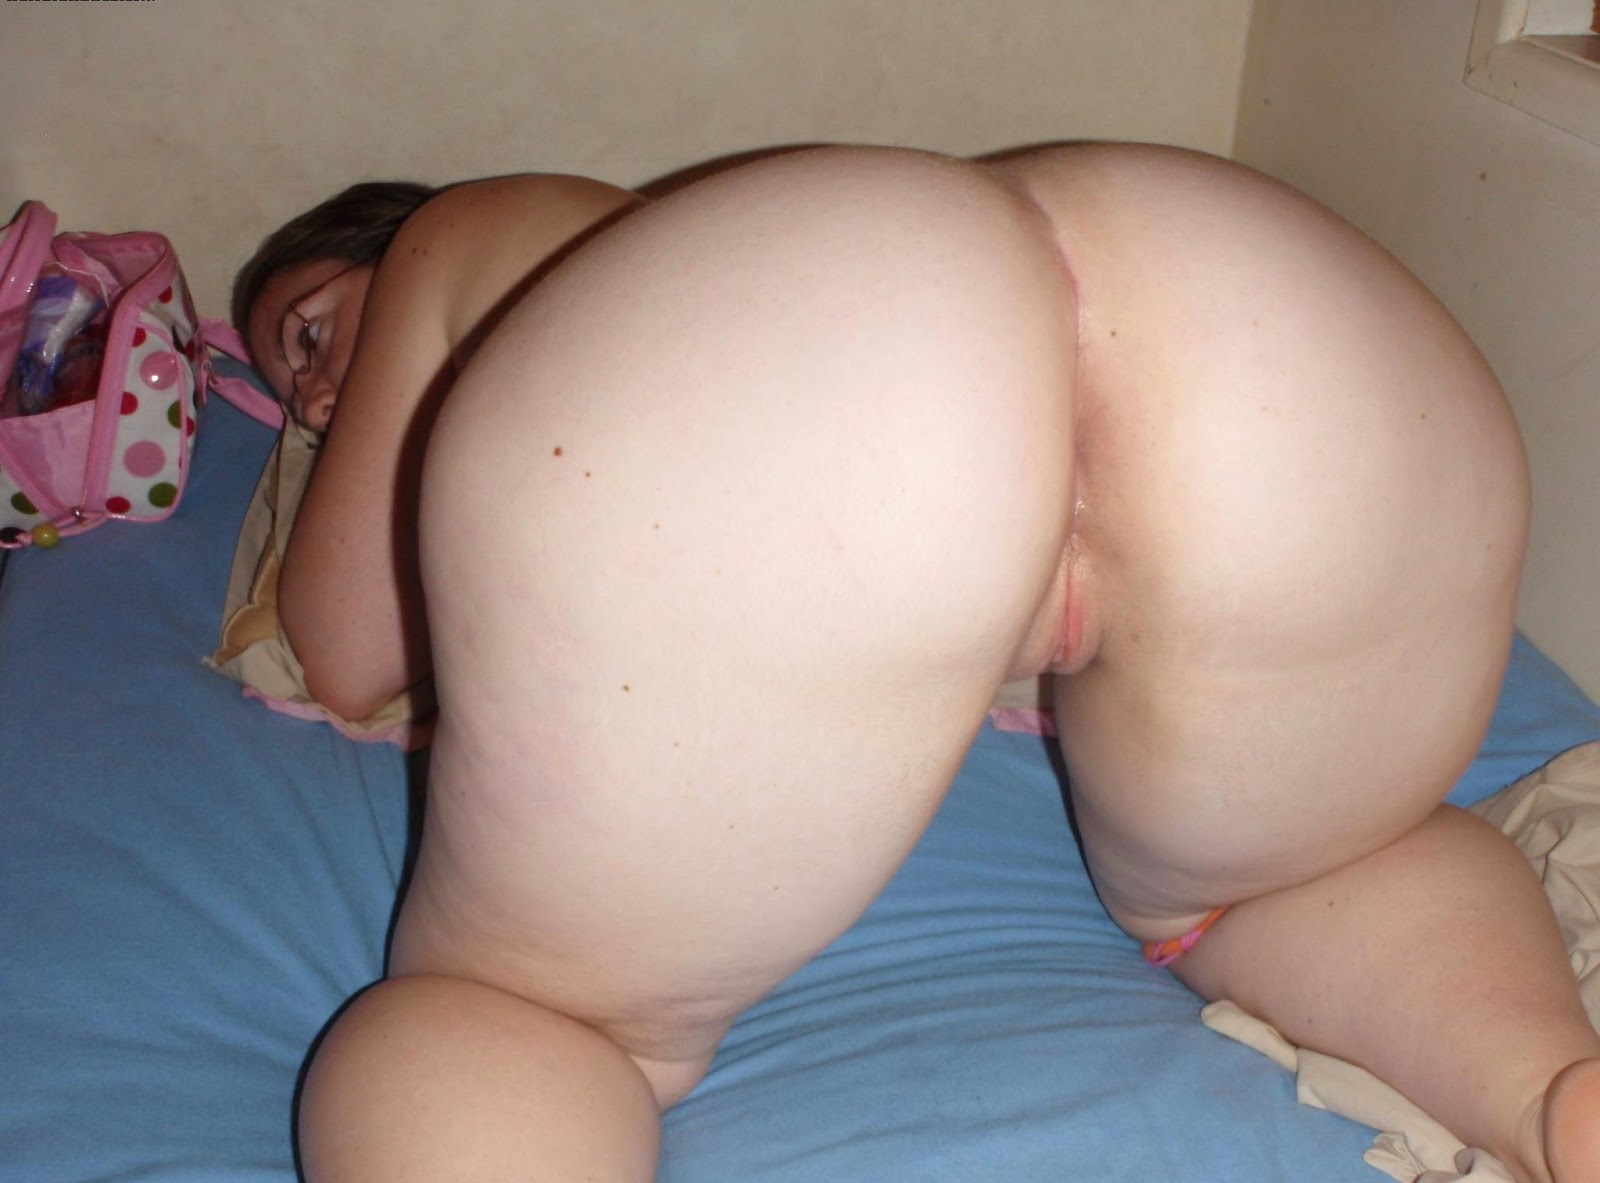 Teen With Fat Ass 121